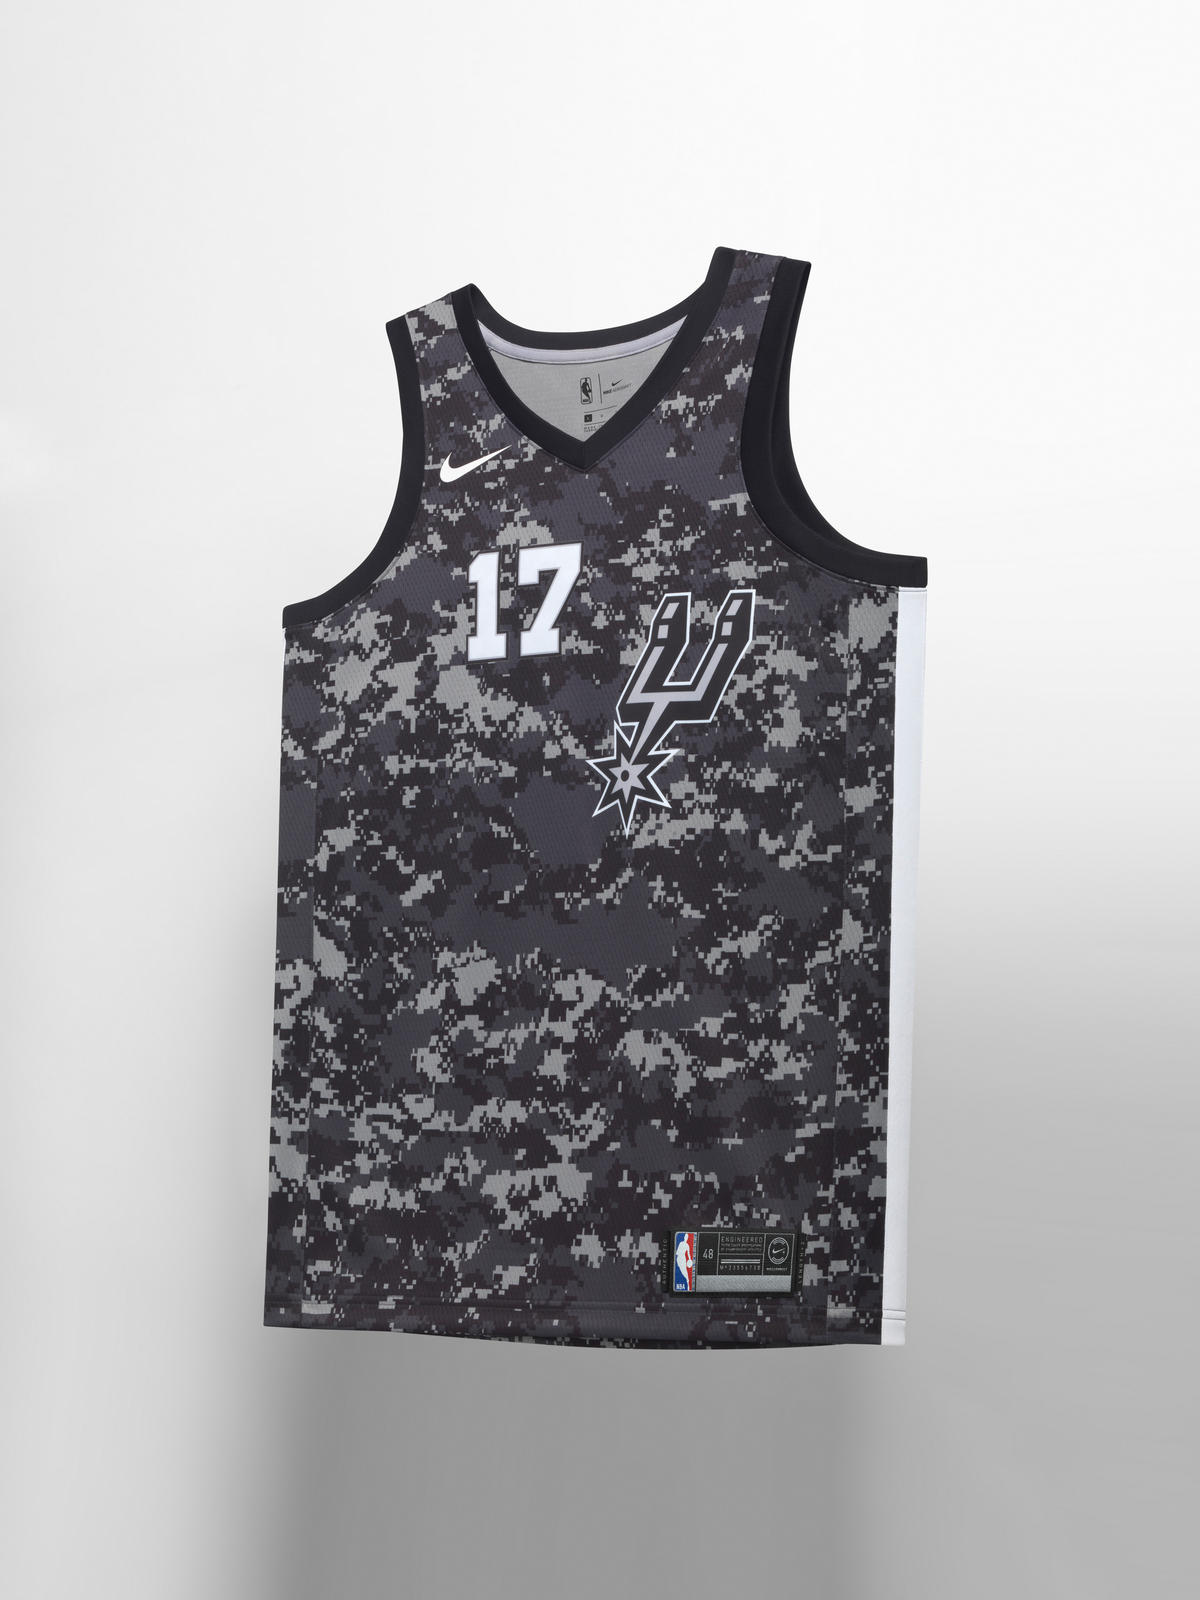 NBA City Edition jerseys  Photos of the final new Nike jersey  cca262aac